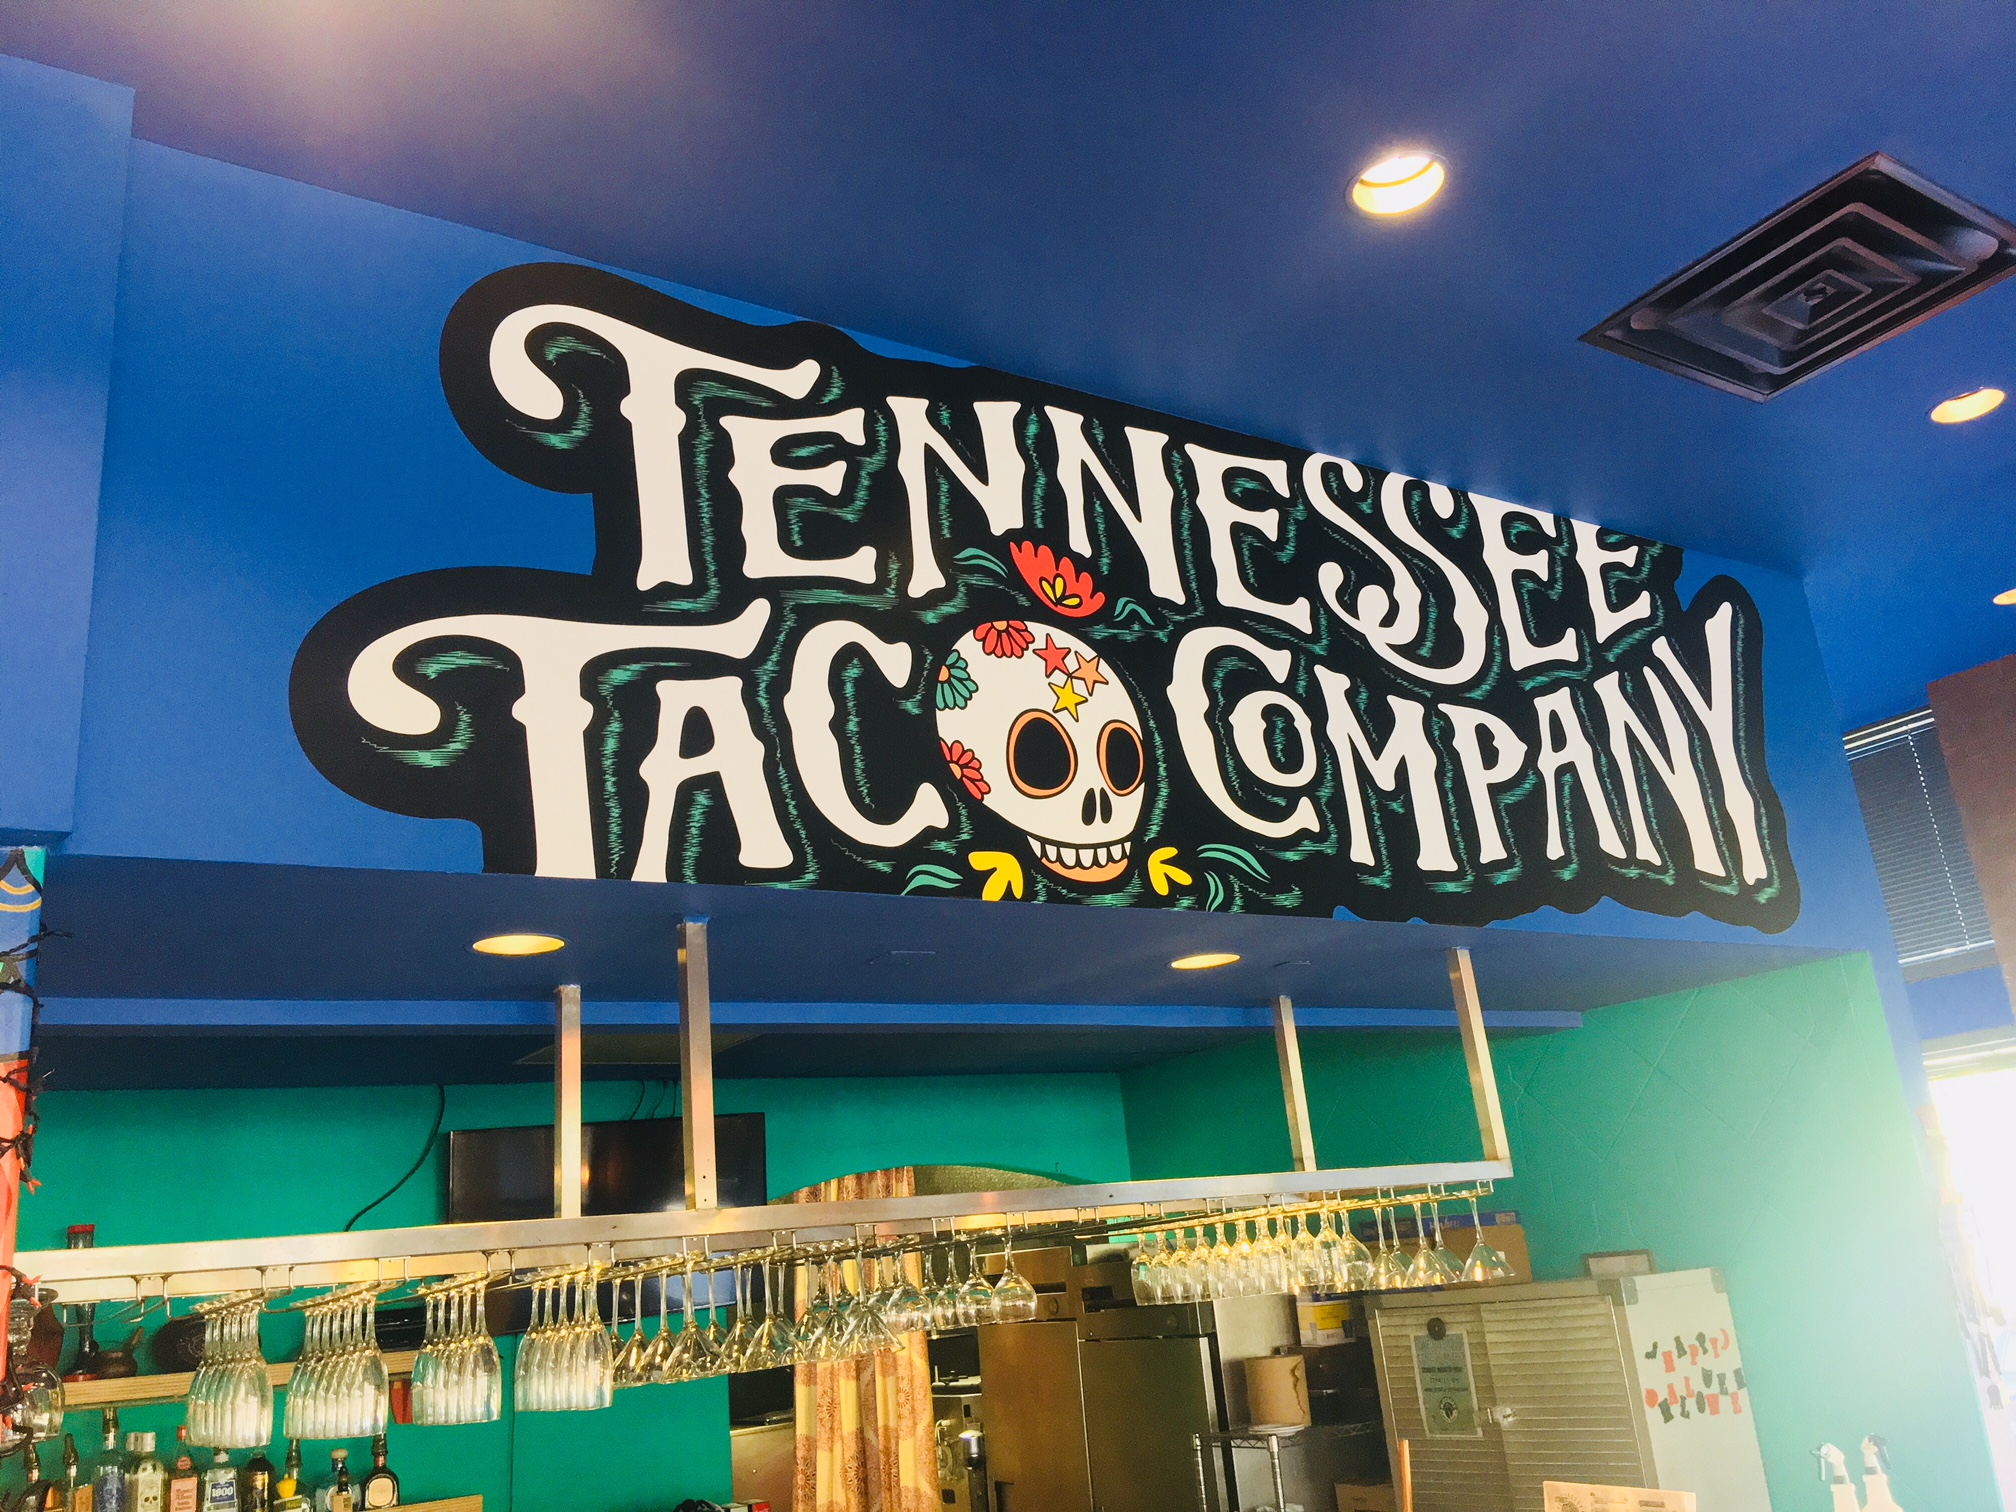 Tennessee Taco Company Wall Mural